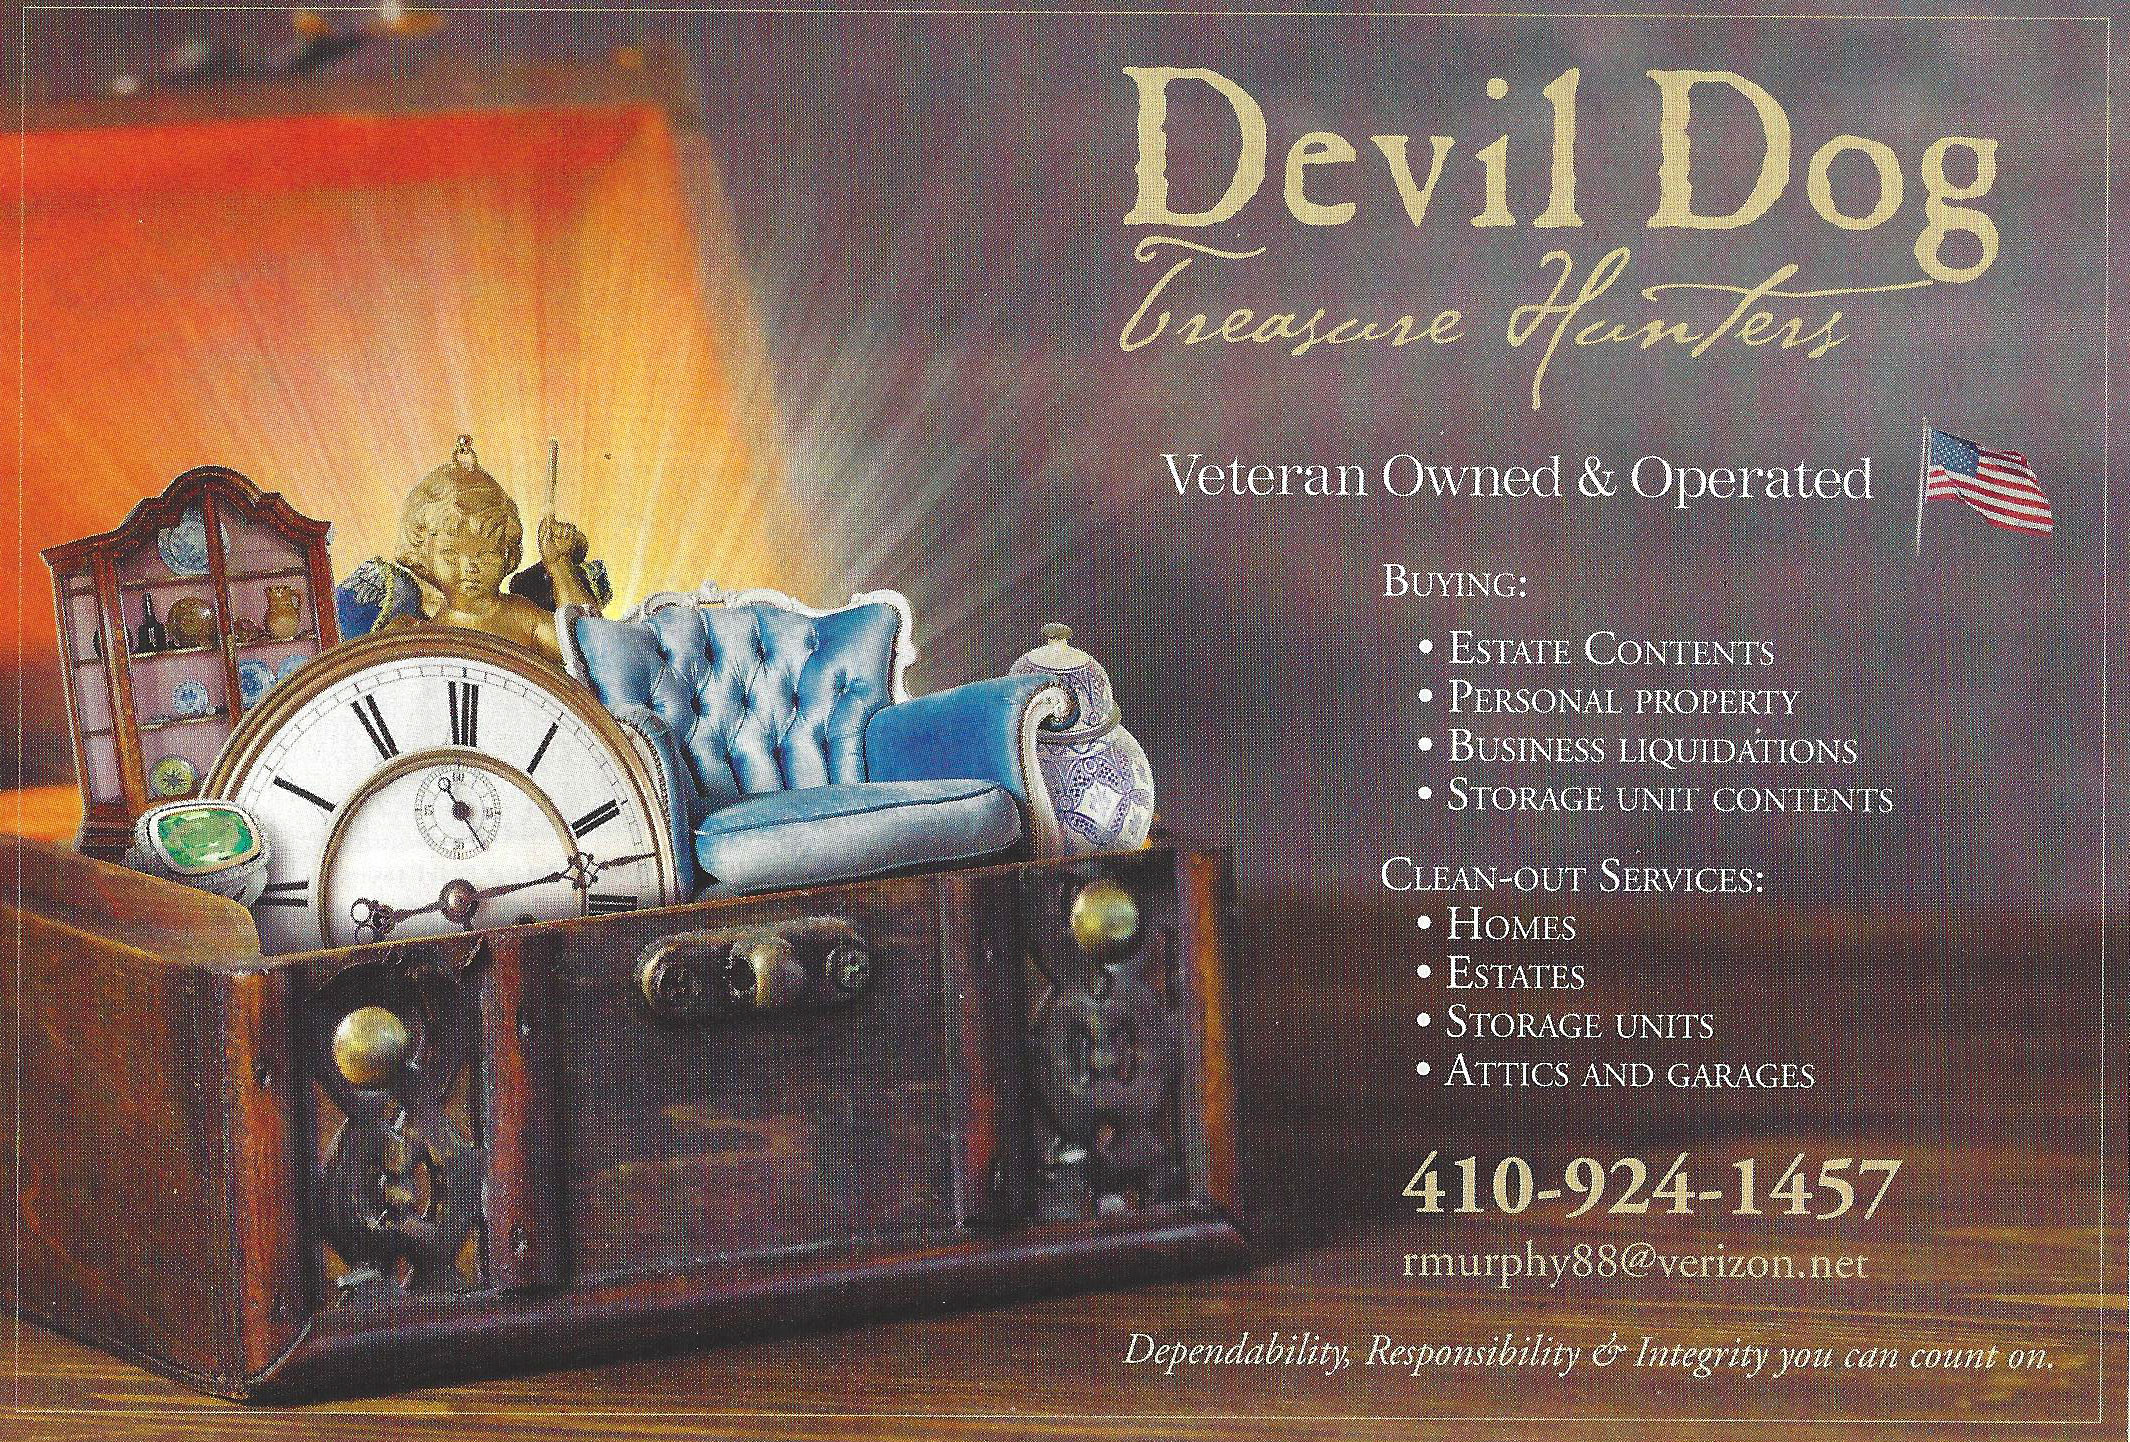 Devil Dog Treasure Hunters reviews | Appraisal Services at 102 Calvert St - Easton MD